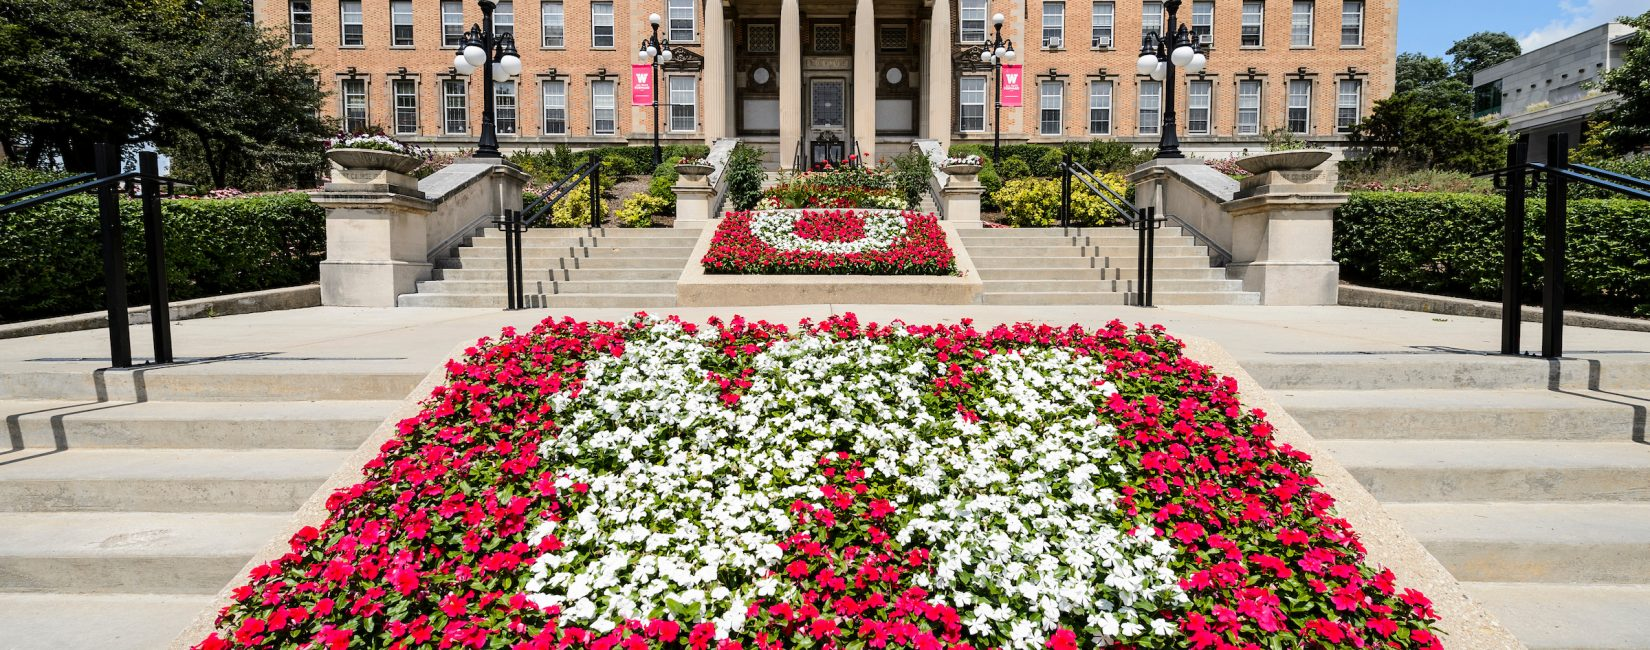 Flowers at entrance of AG Hall U of Wisconsin - Madison.